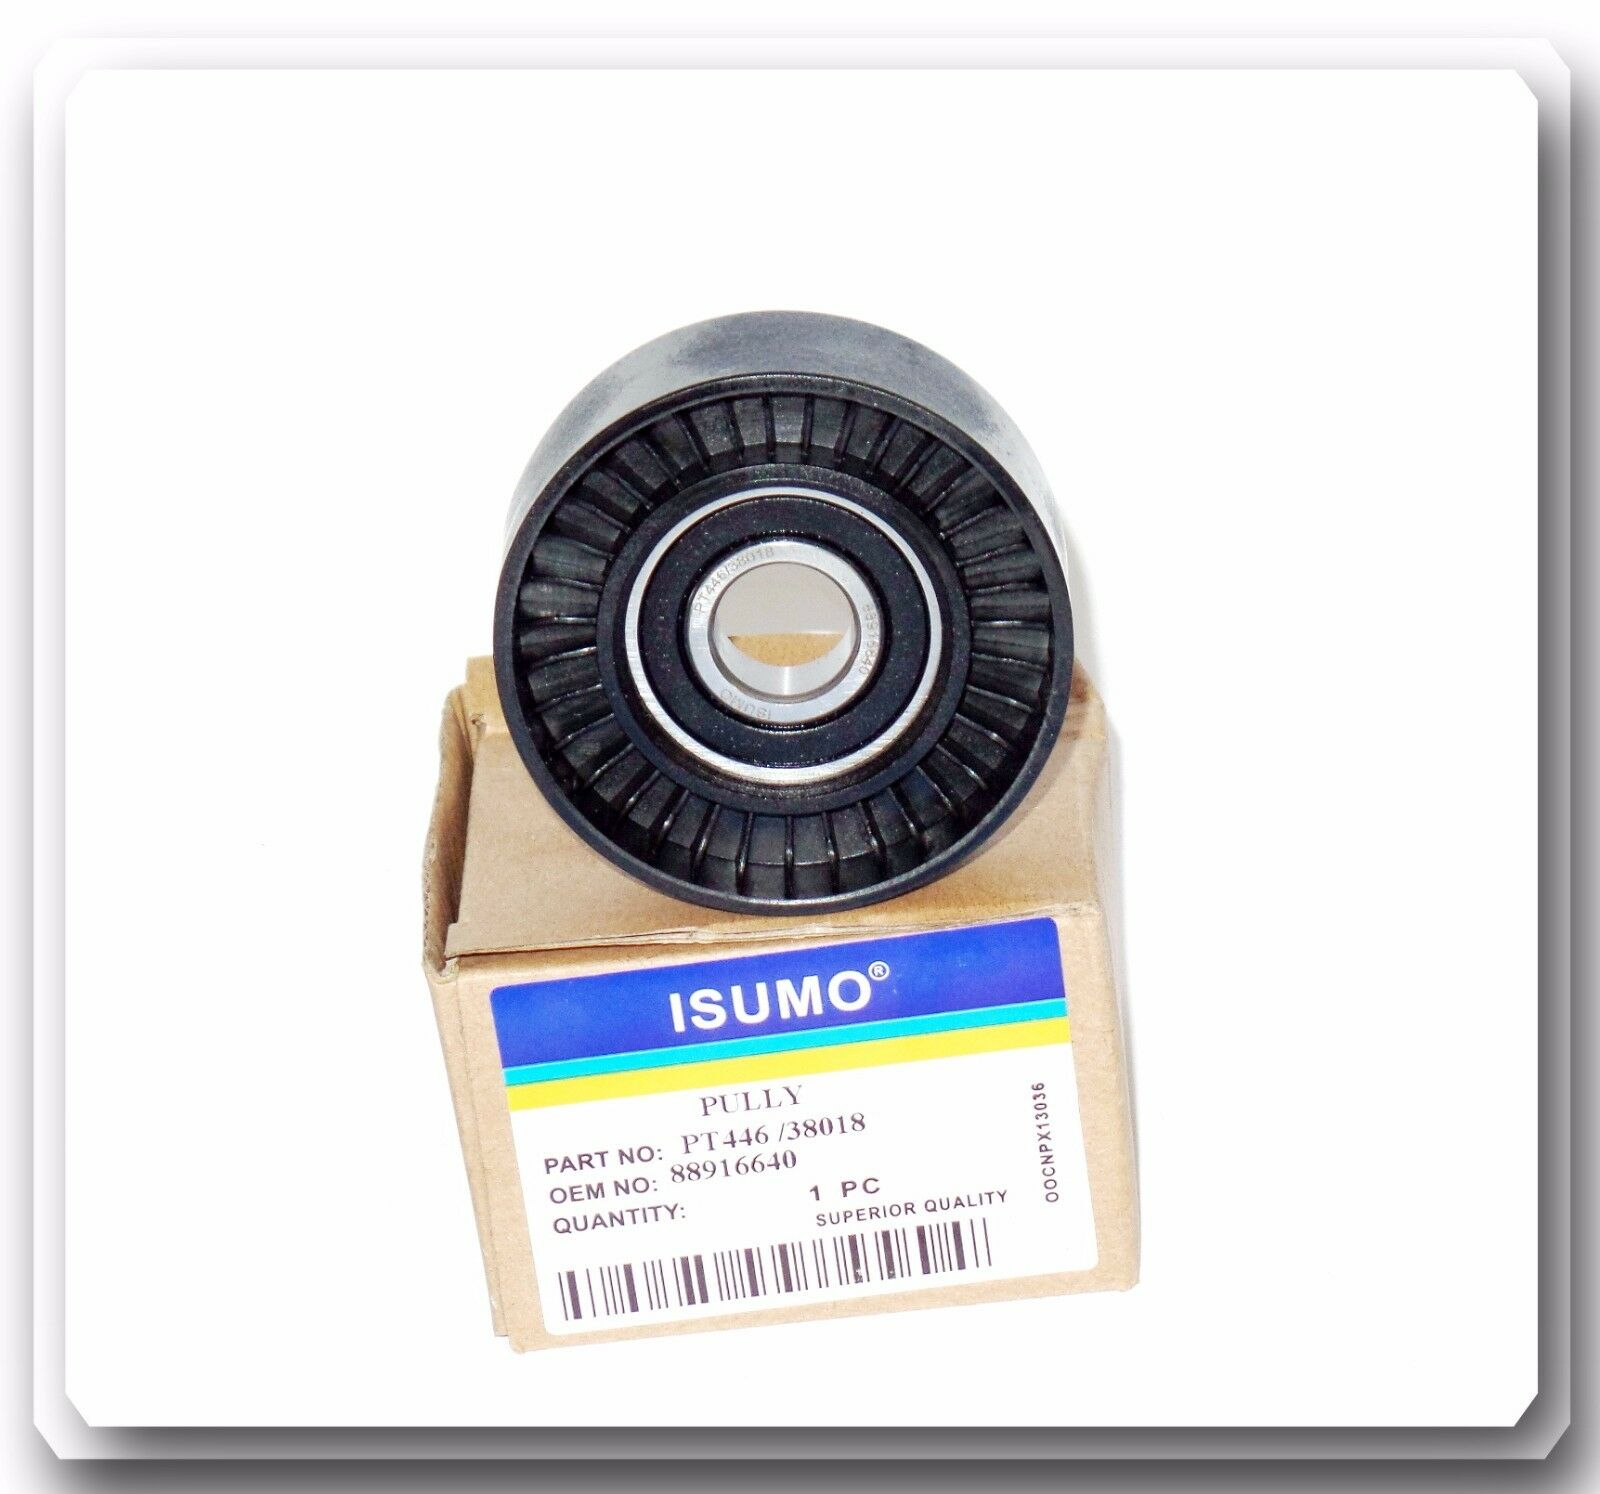 Pt446 4 38018 Drive Belt Idler Roller Pulley Od70mm Bearing Id17mm 2002 Mazda 626 Tensioner 1 Of 6free Shipping